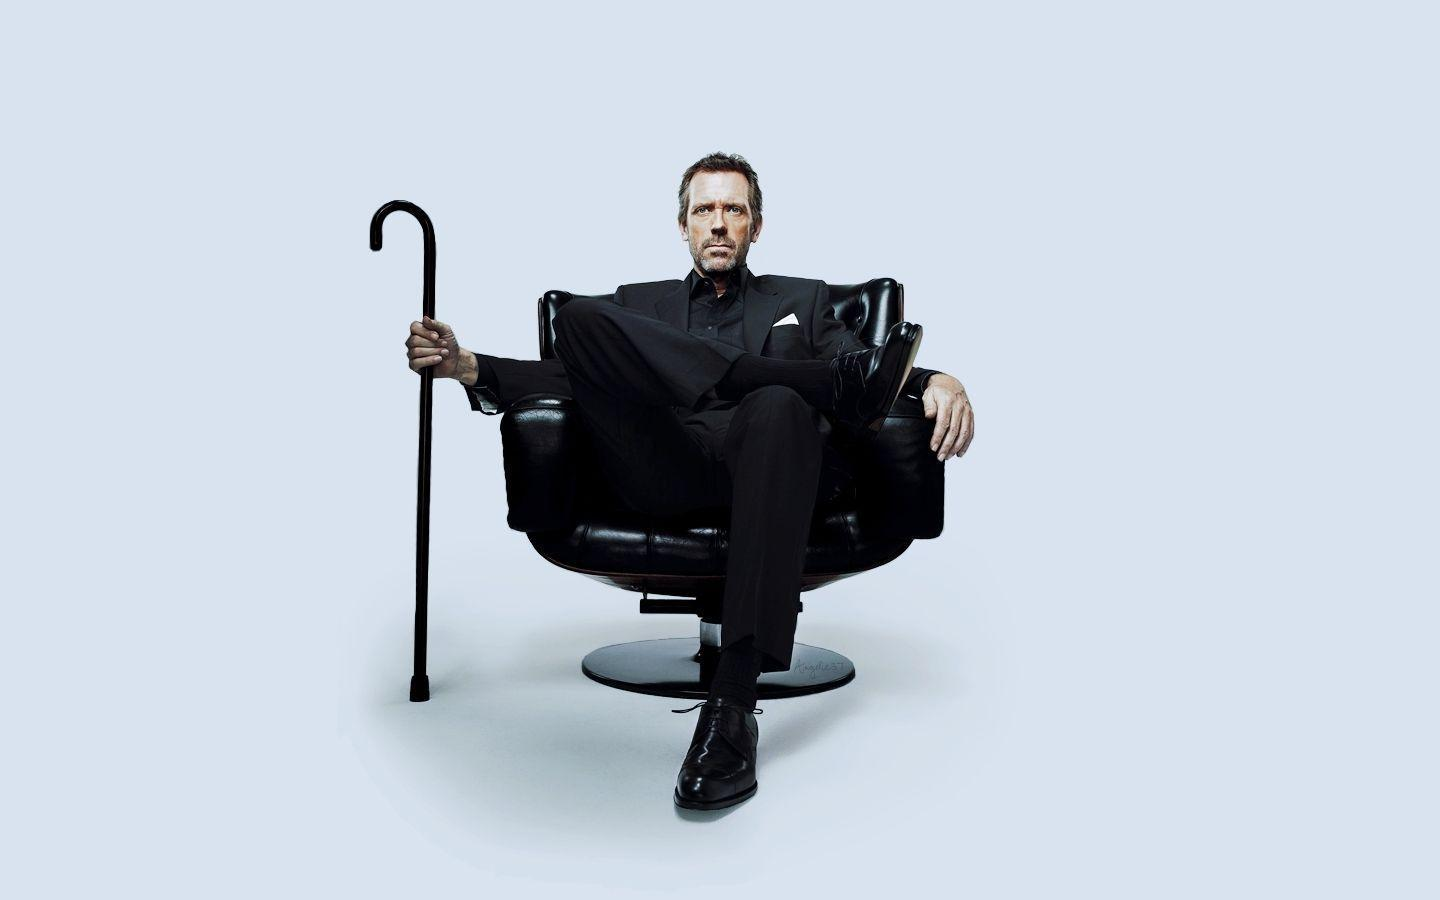 house md wallpapers - wallpaper cave